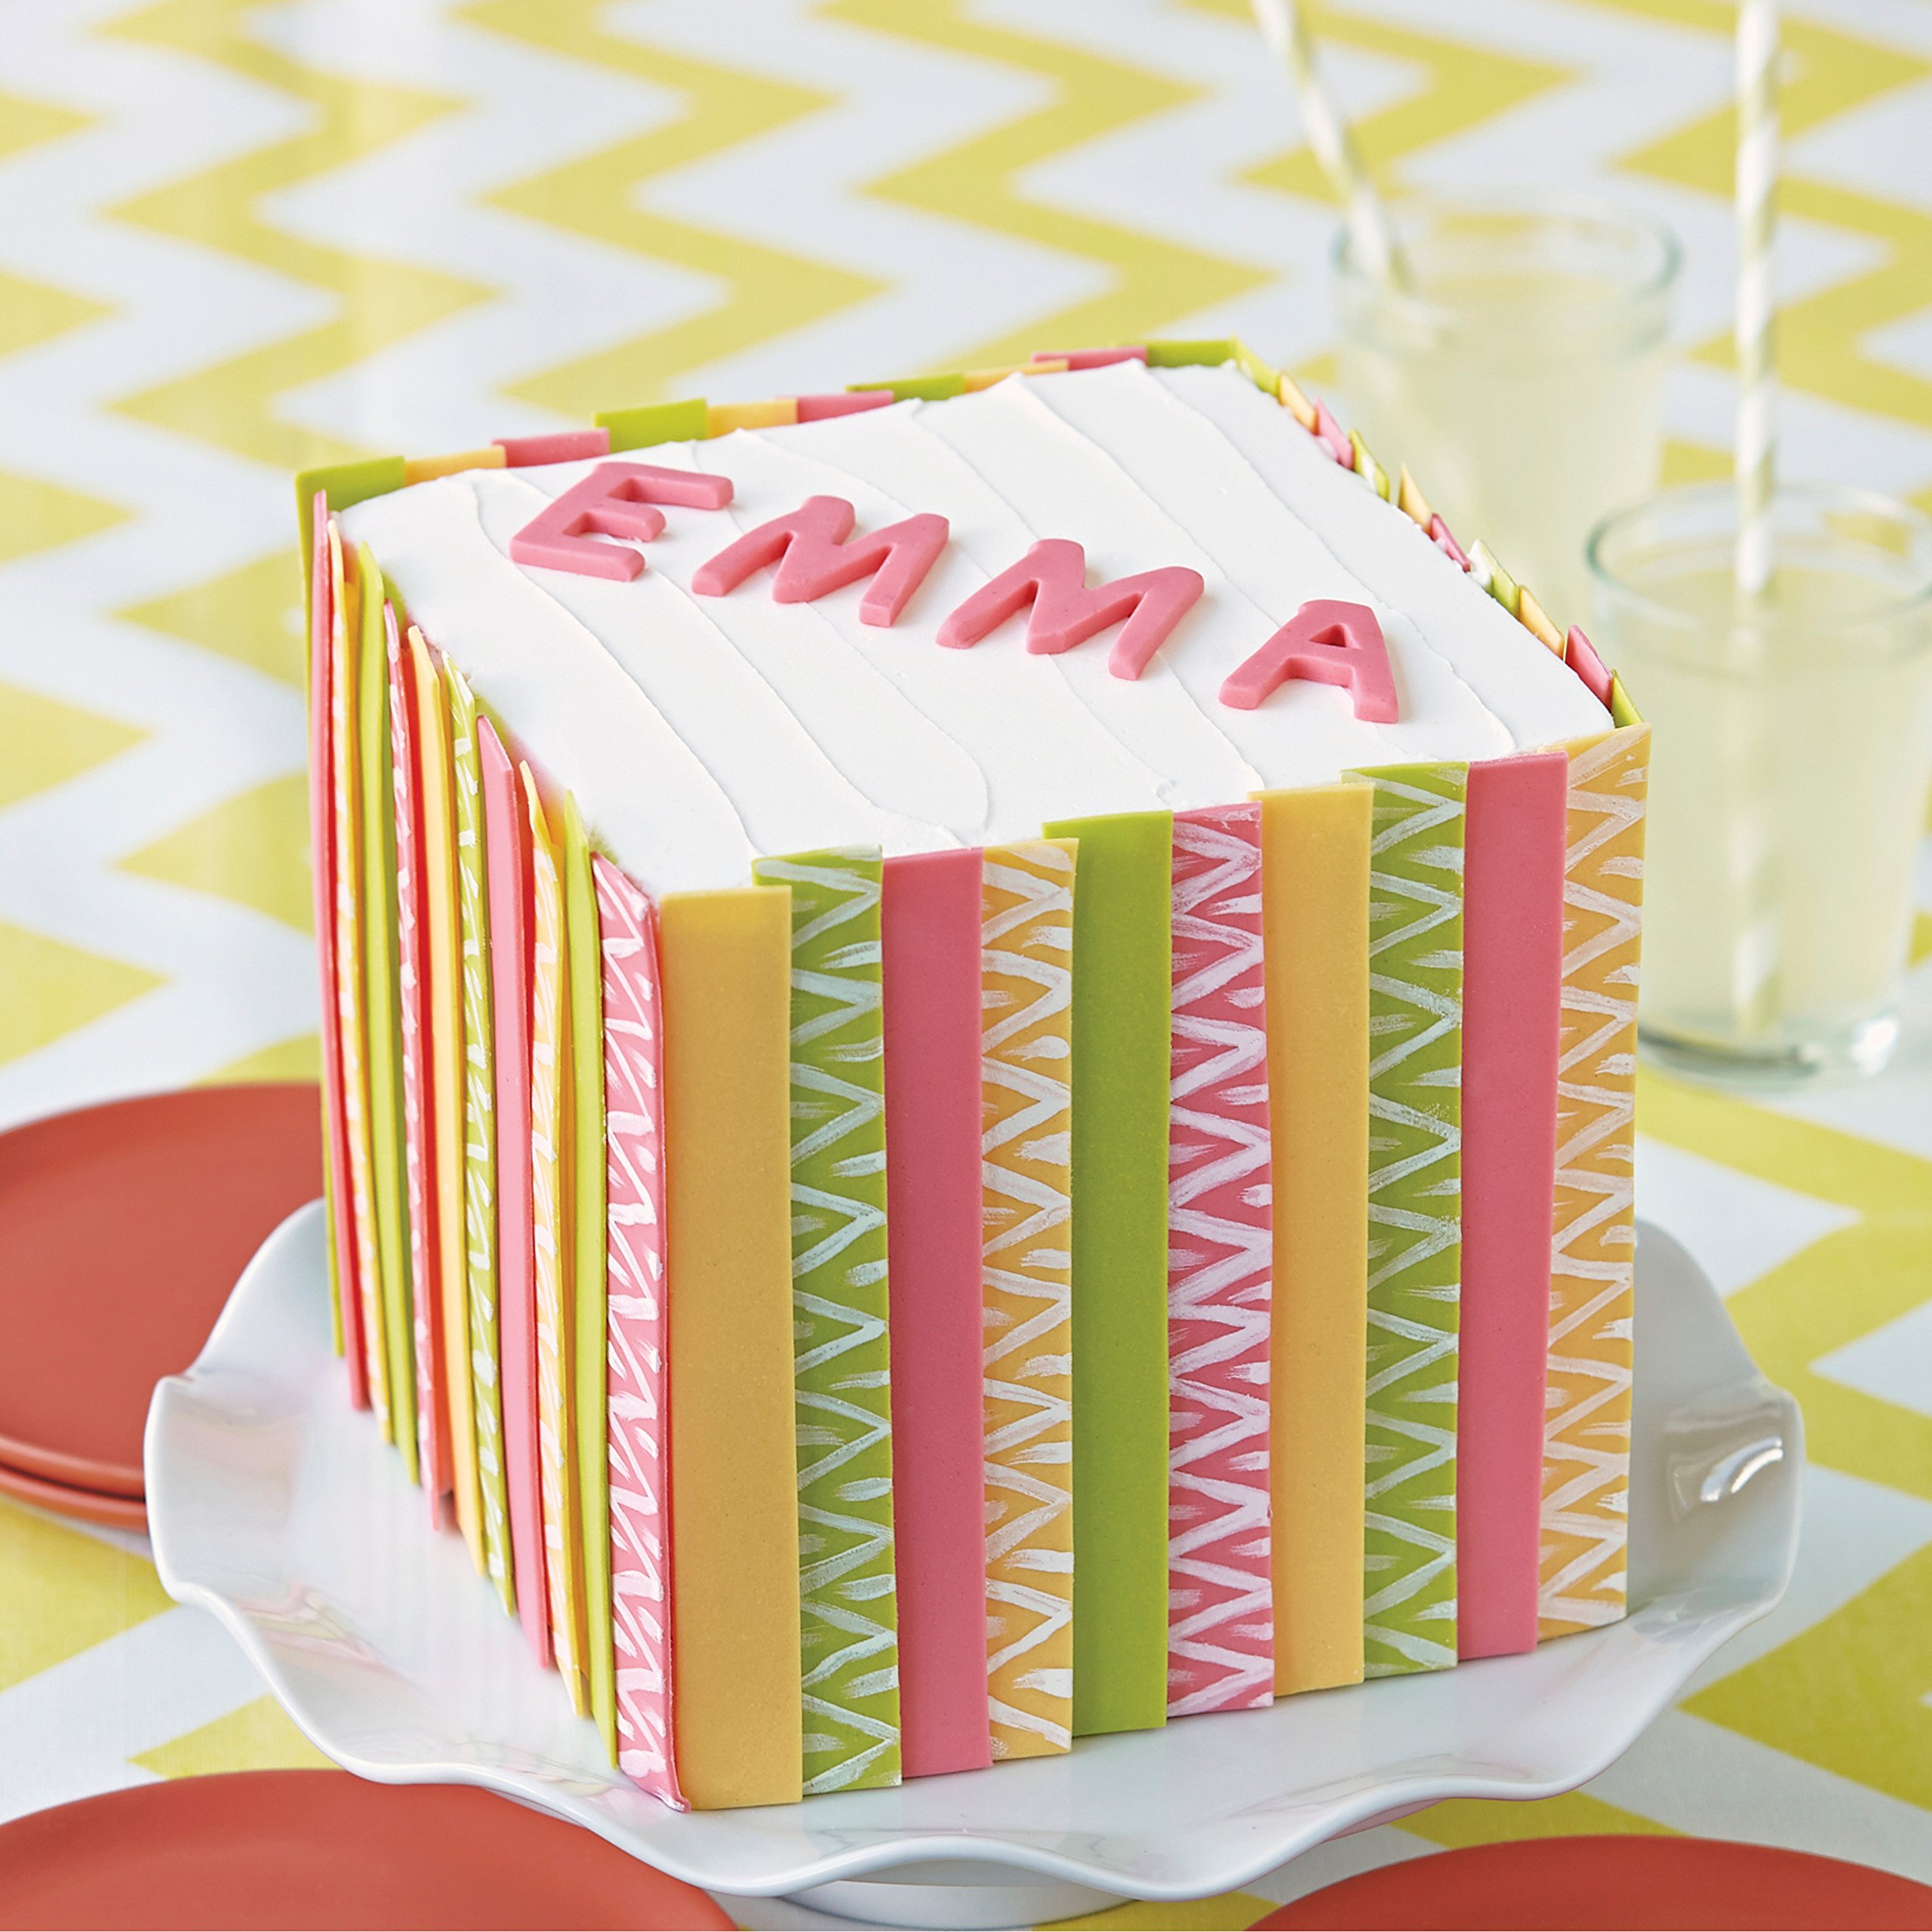 Wilton Silicone Letters and Numbers Fondant and Gum Paste Molds, 4-Piece - Cake Decorating Supplies by Wilton (Image #5)